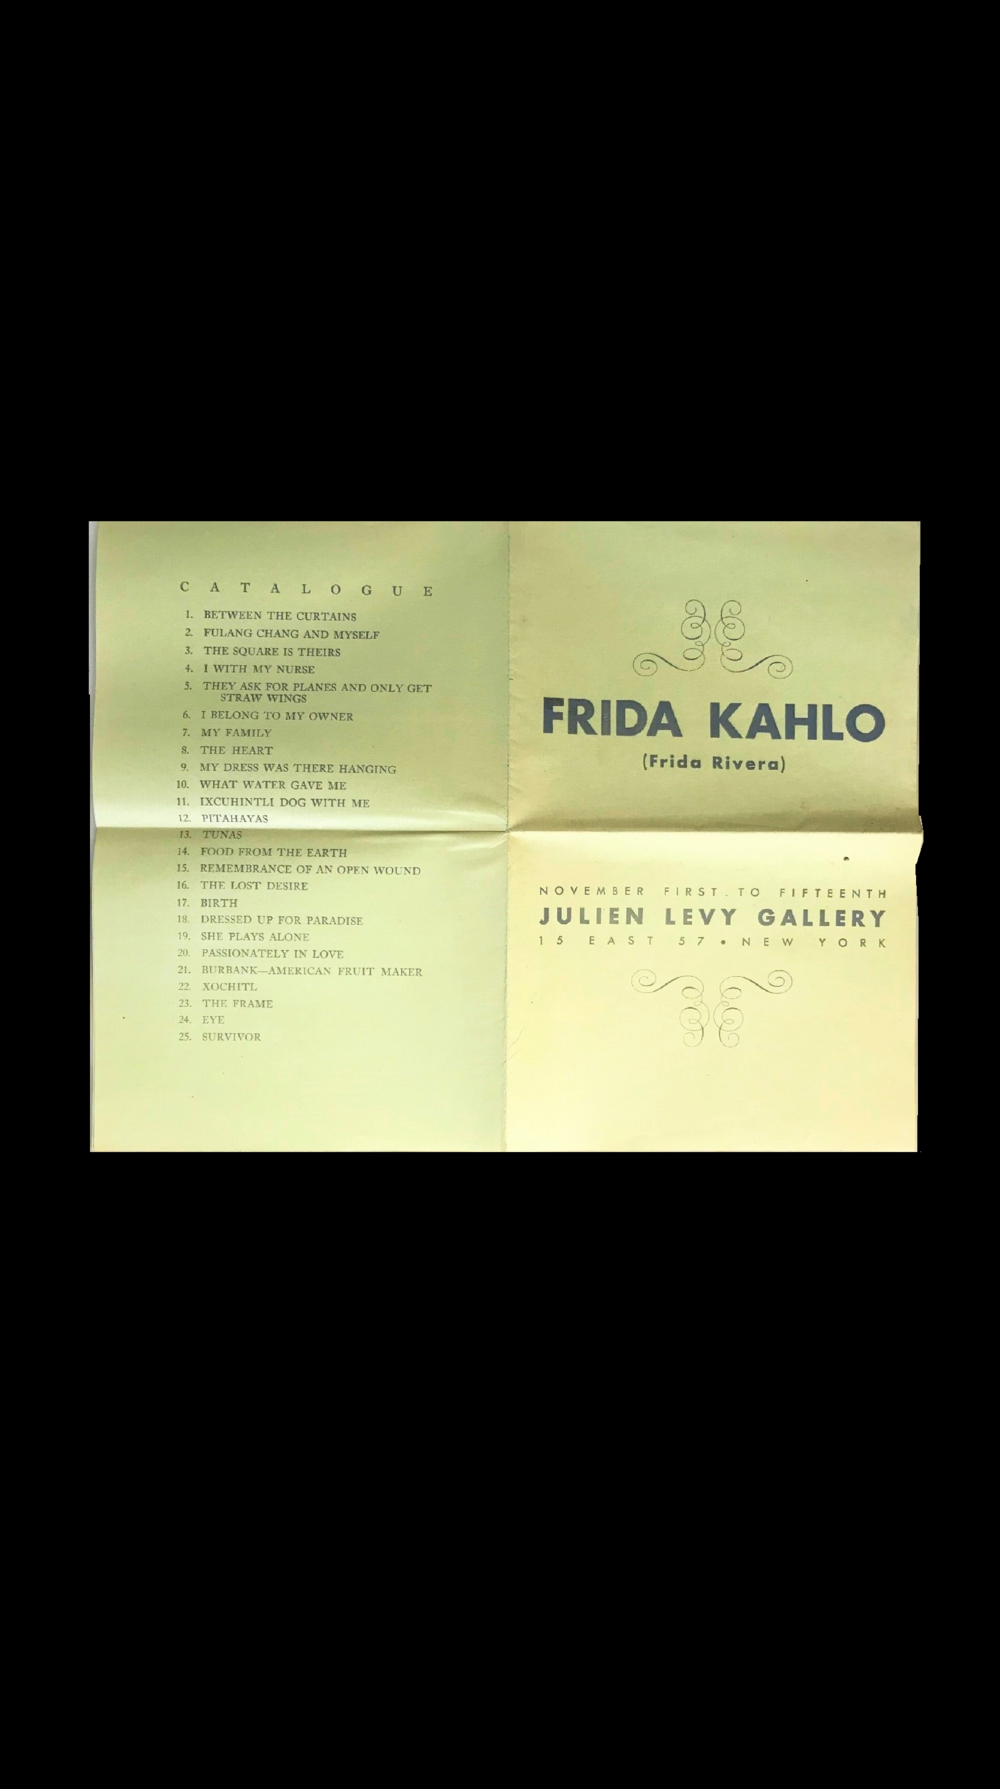 """""""Frida Kahlo- (Frida Rivera)"""" , 1938, Rare Exhibition Catalogue, November First To Fifteenth, Julien Levy Gallery NYC."""